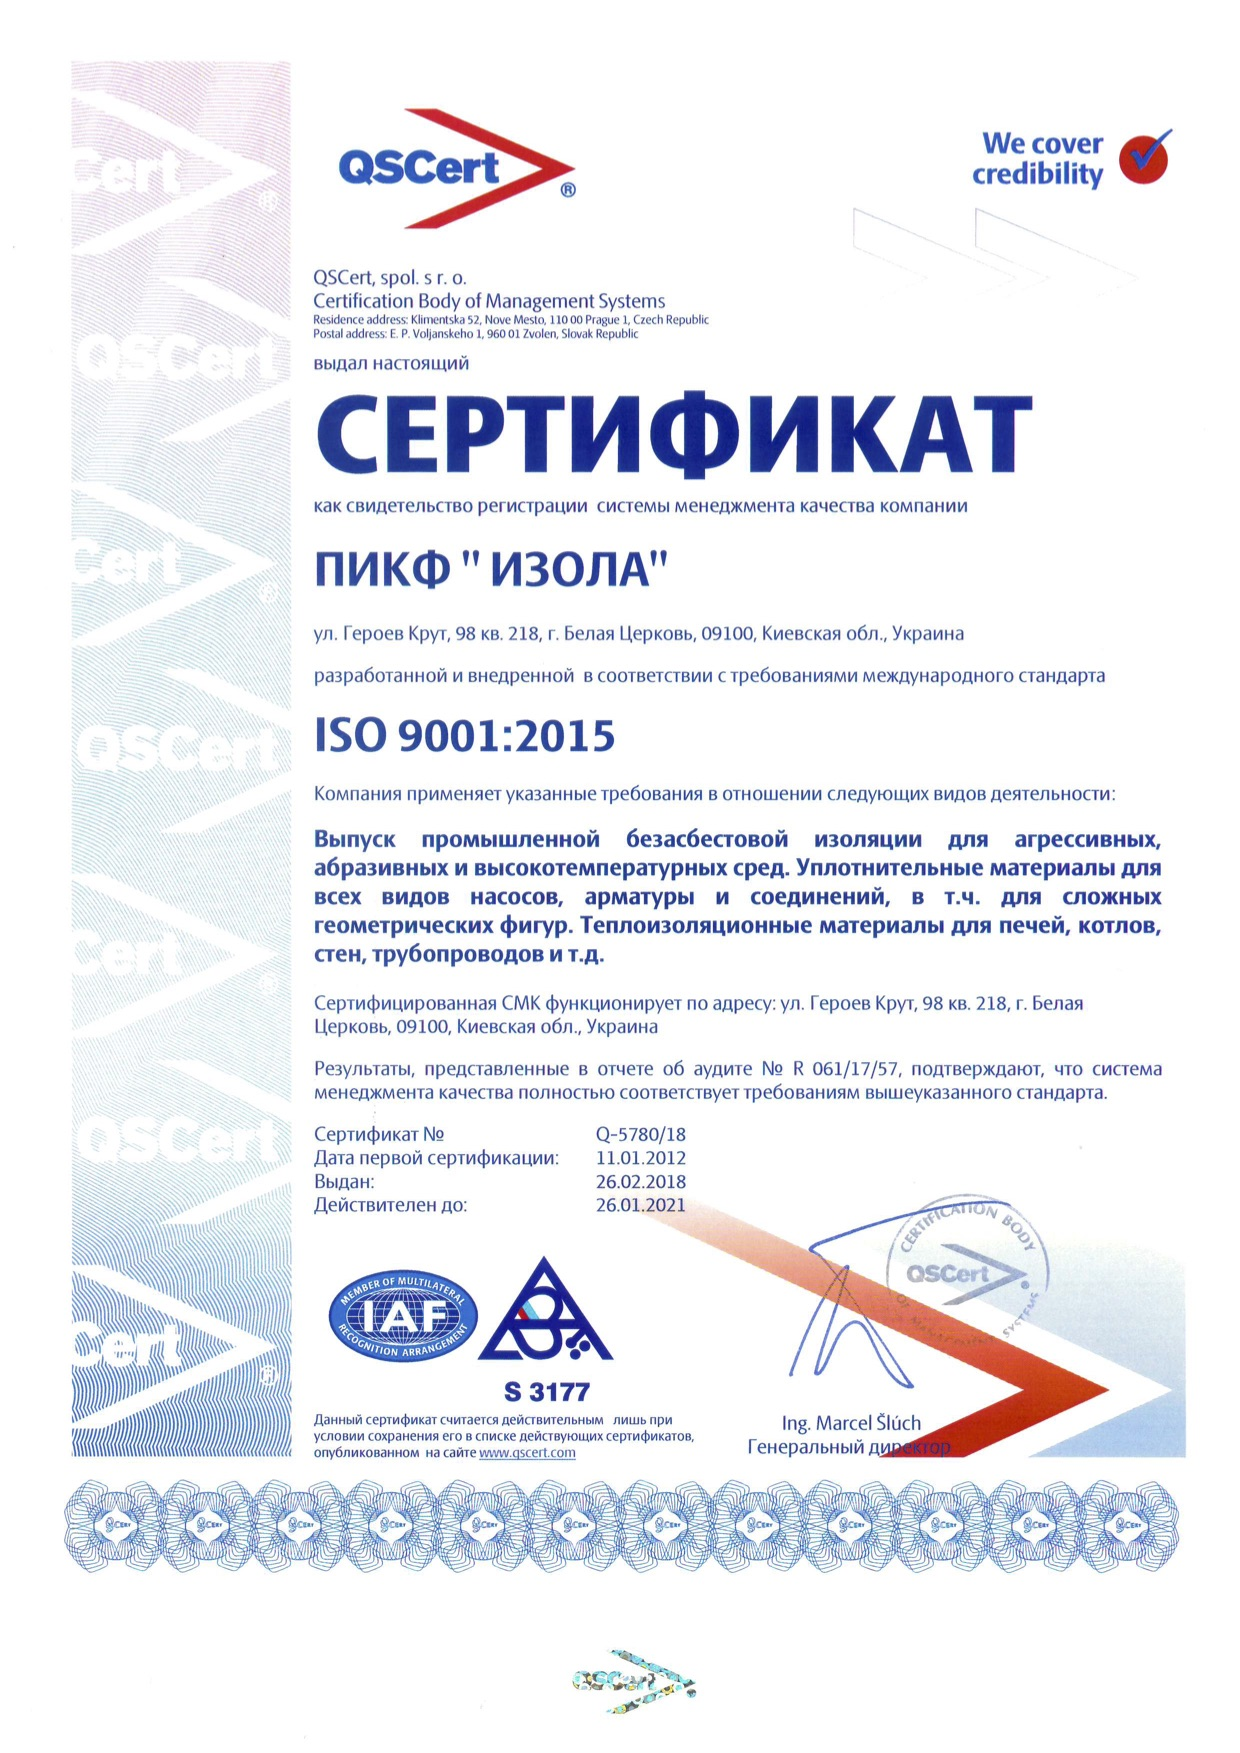 The manufacturer PIKF «IZOLA» is certificated under the international standard of management of quality assurance ISO 9001:2015